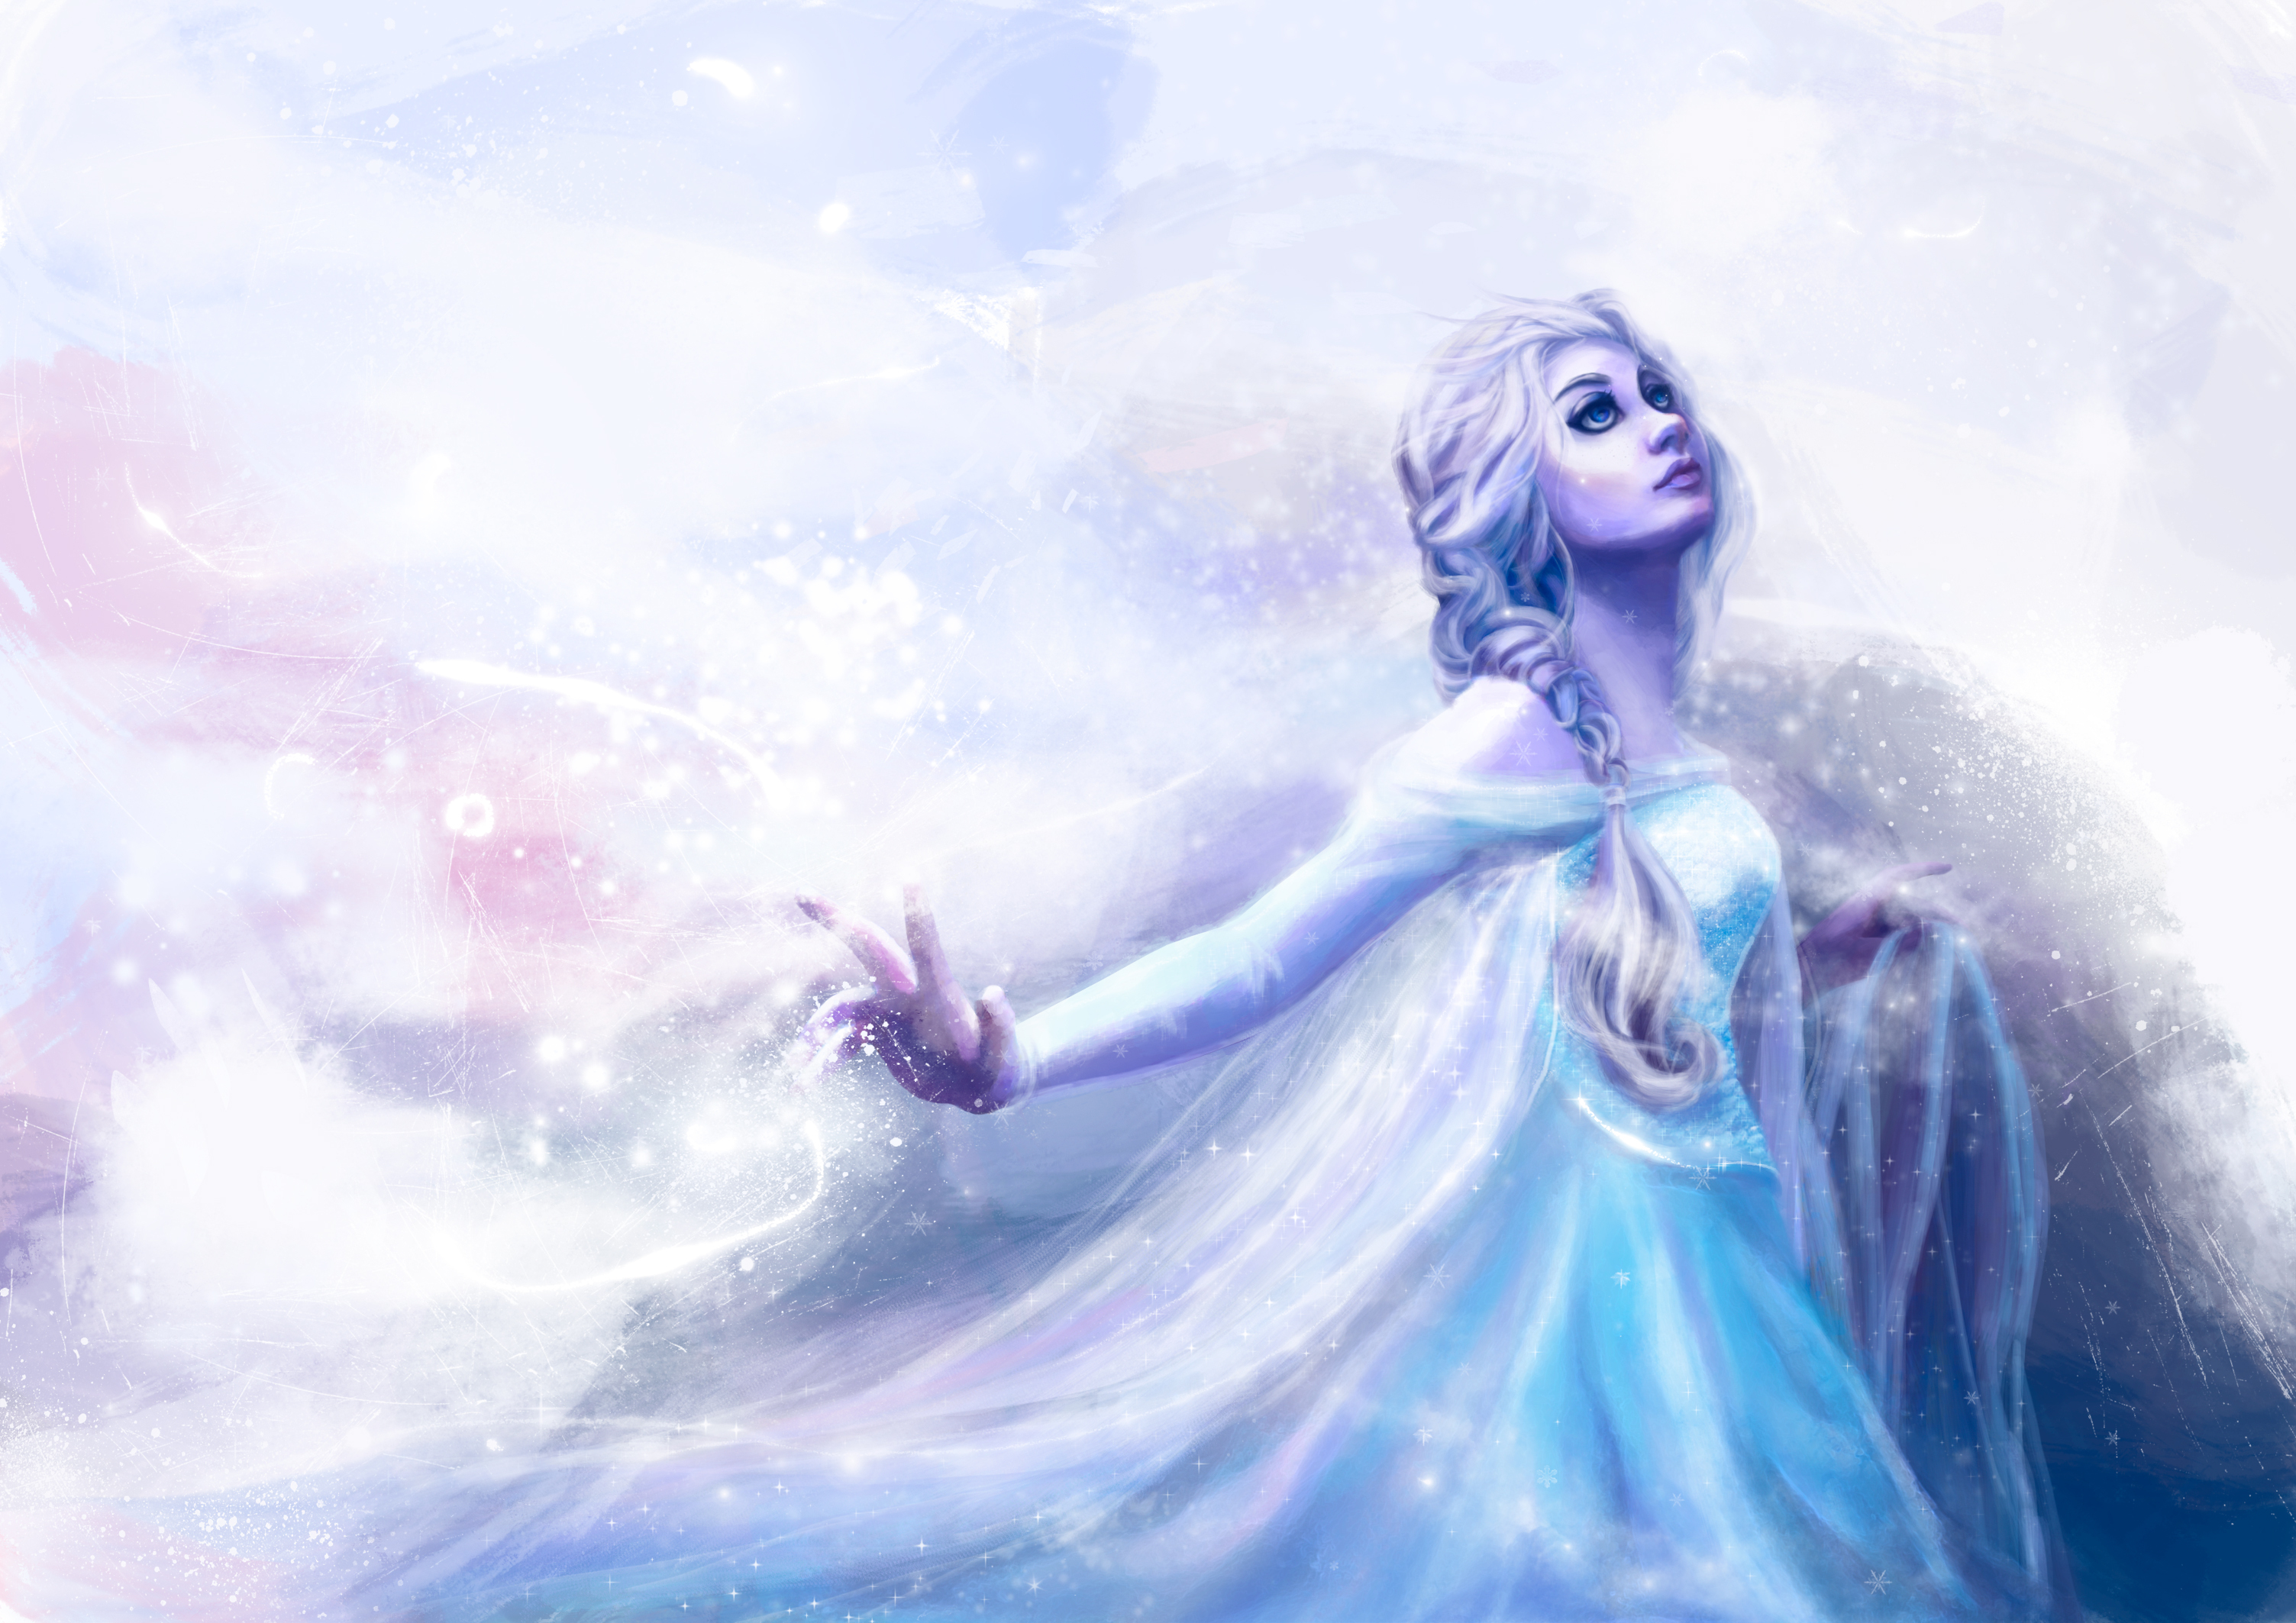 snow queen elsa painting winter art pattern frozen hd wallpaper 3007x2126